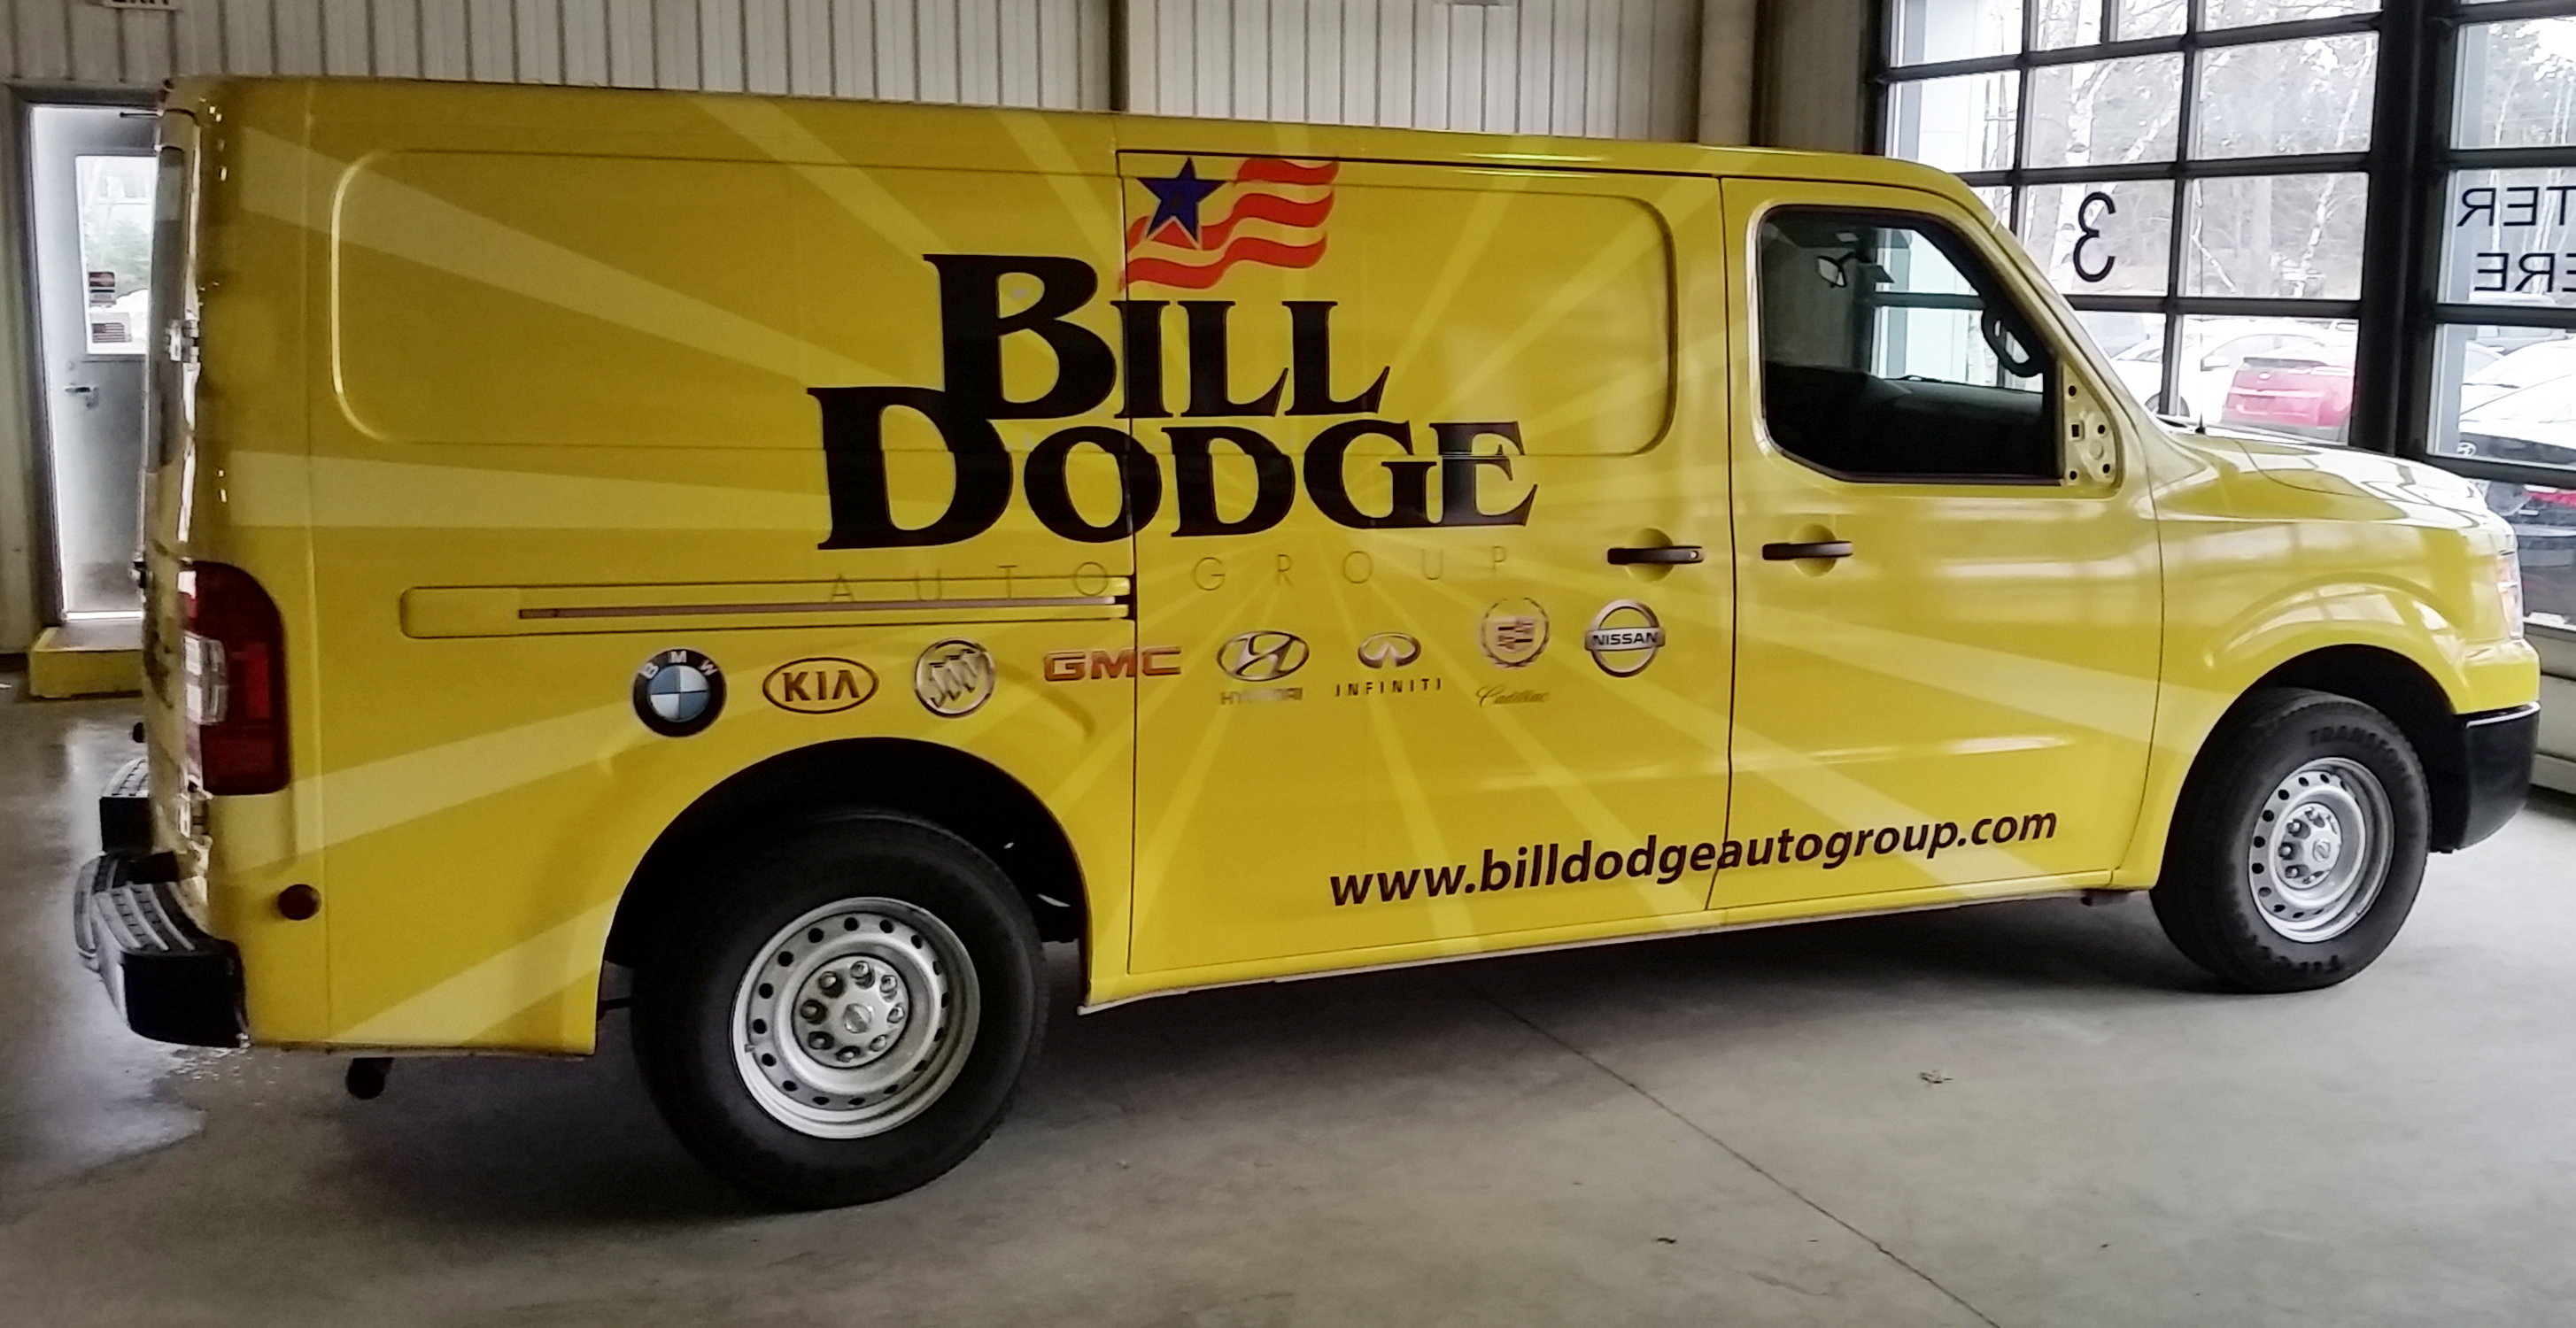 Bill Dodge Parts Van wrap